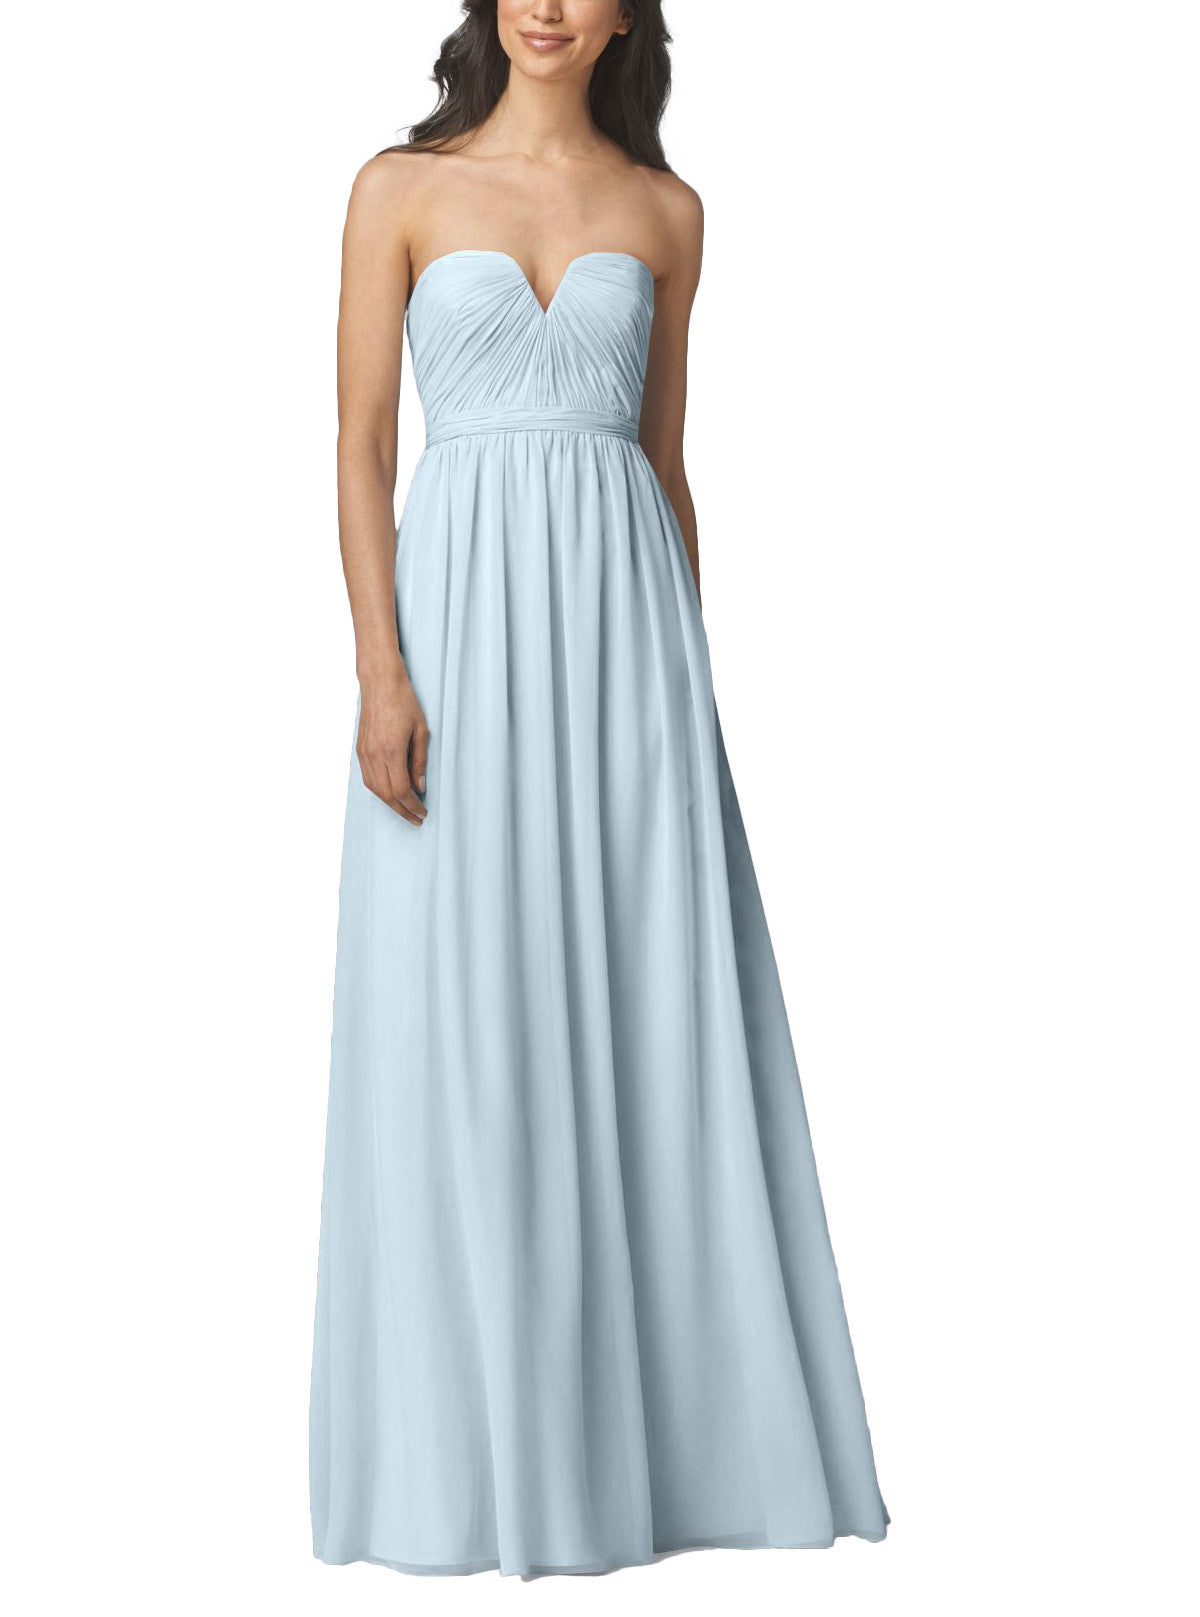 Wtoo by Watters Style 907 Bridesmaid Dress